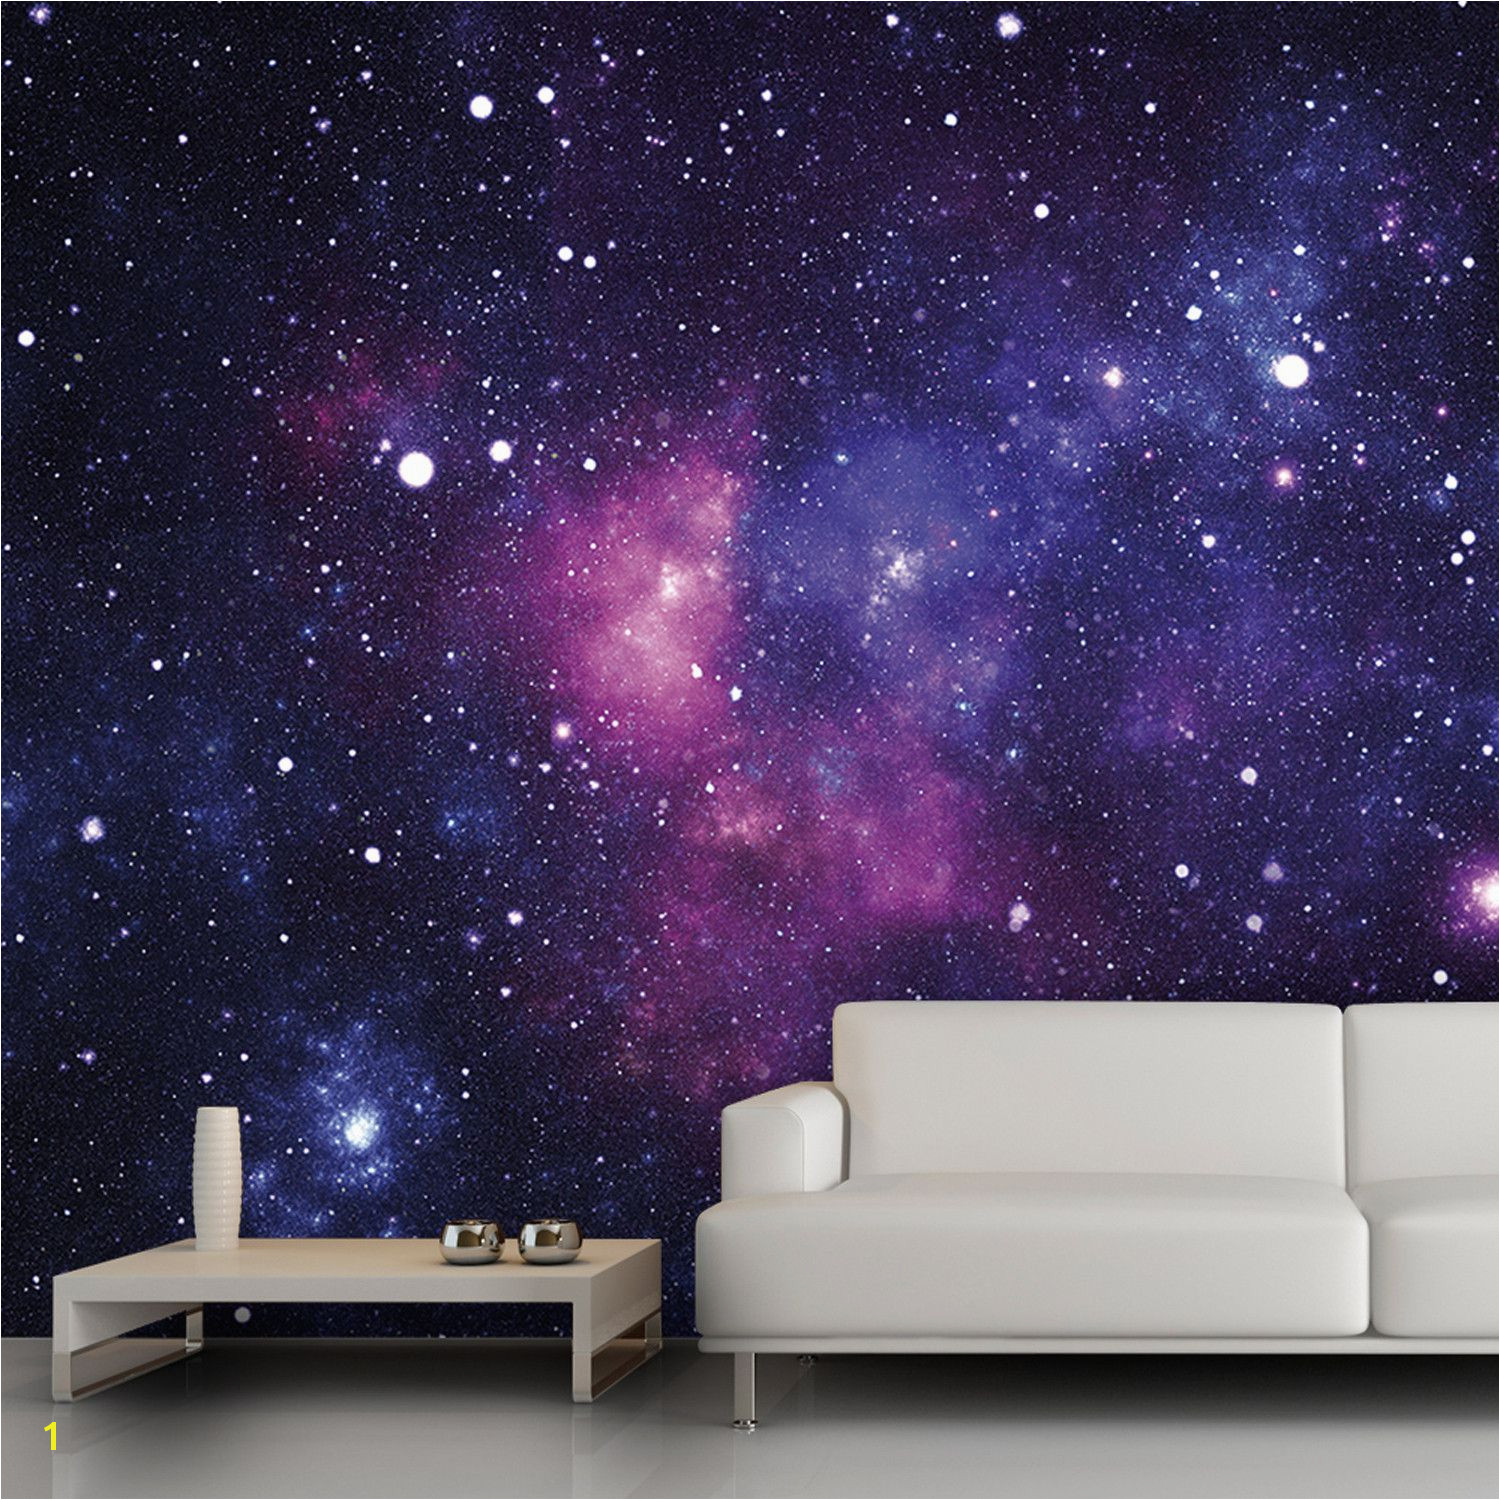 Space Wall Mural Uk Galaxy Wall Mural 13 X9 $54 Trying to Think Of Cool Wall Decor